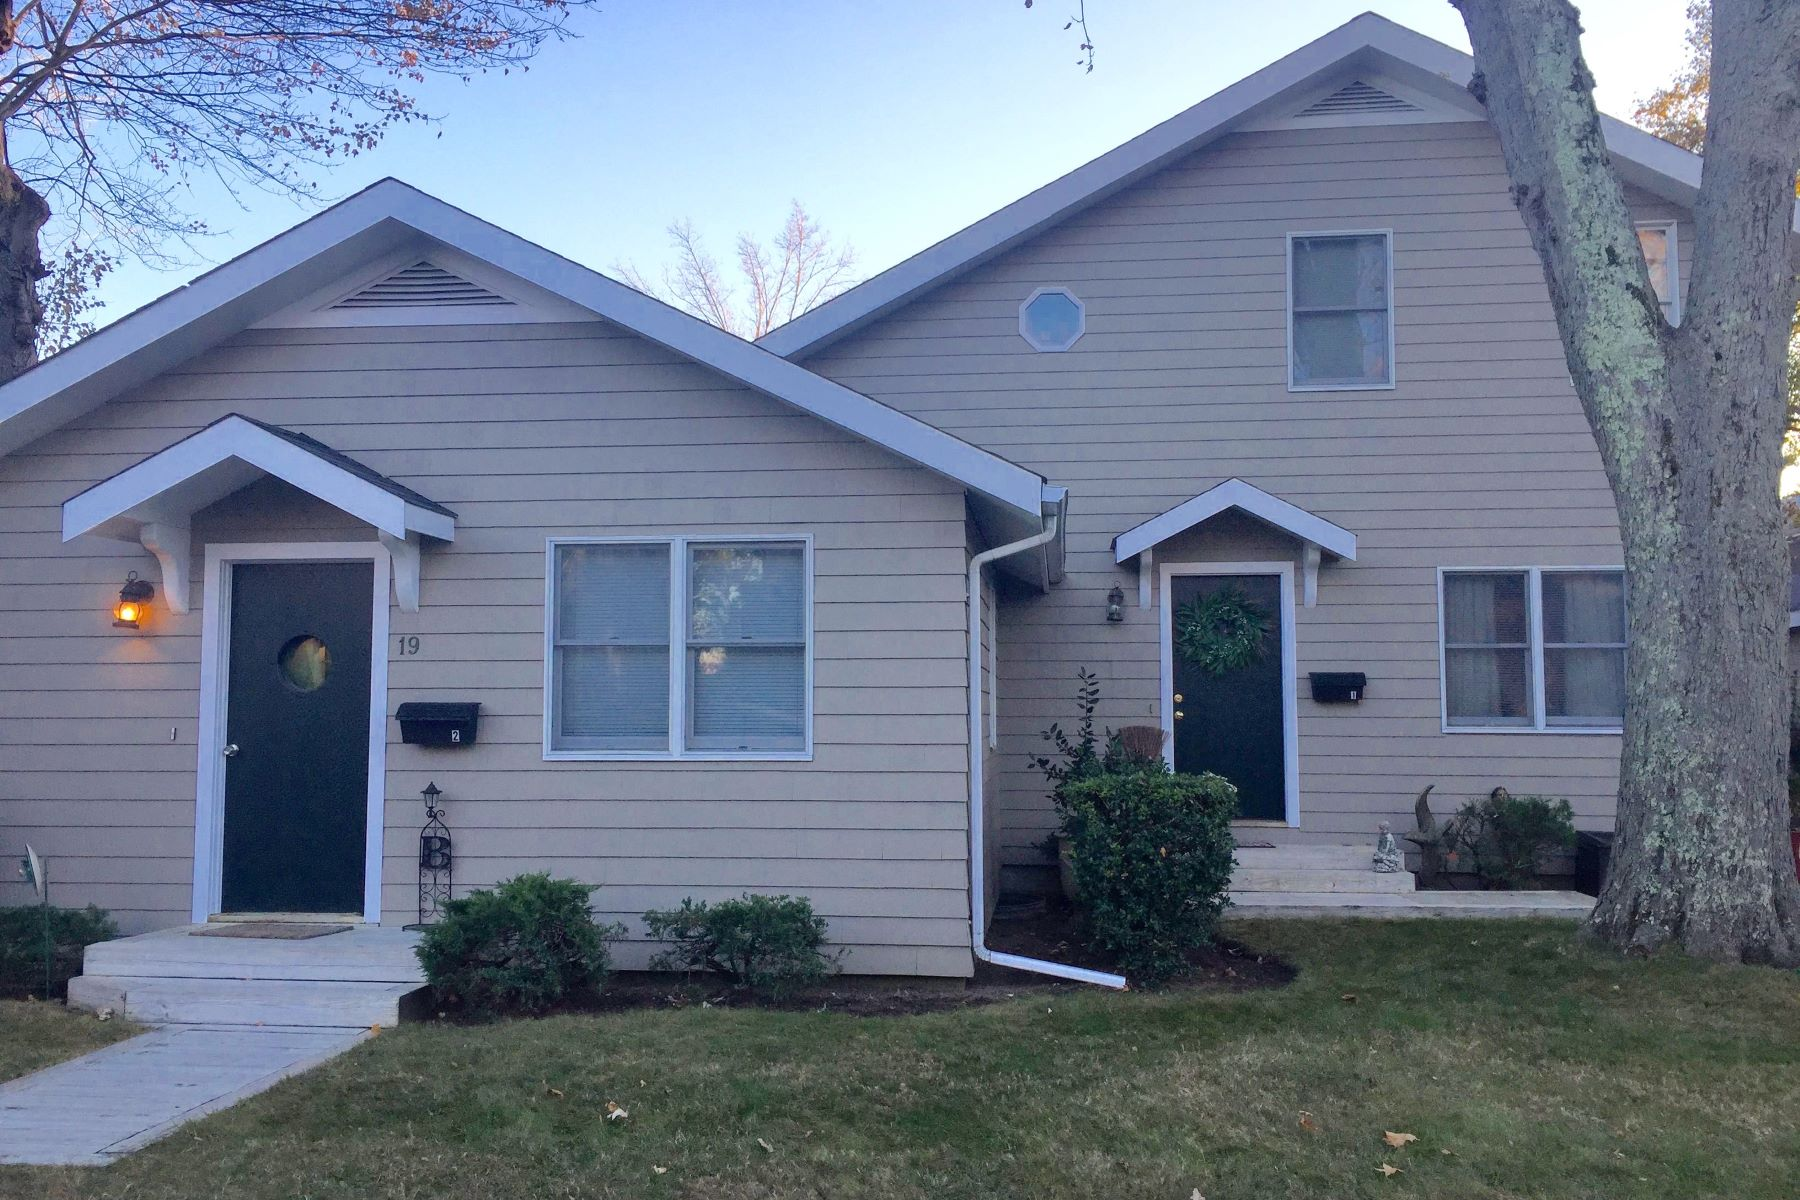 Multi-Family Home for Sale at 19 Rippowam Road Stamford, Connecticut, 06904 United States